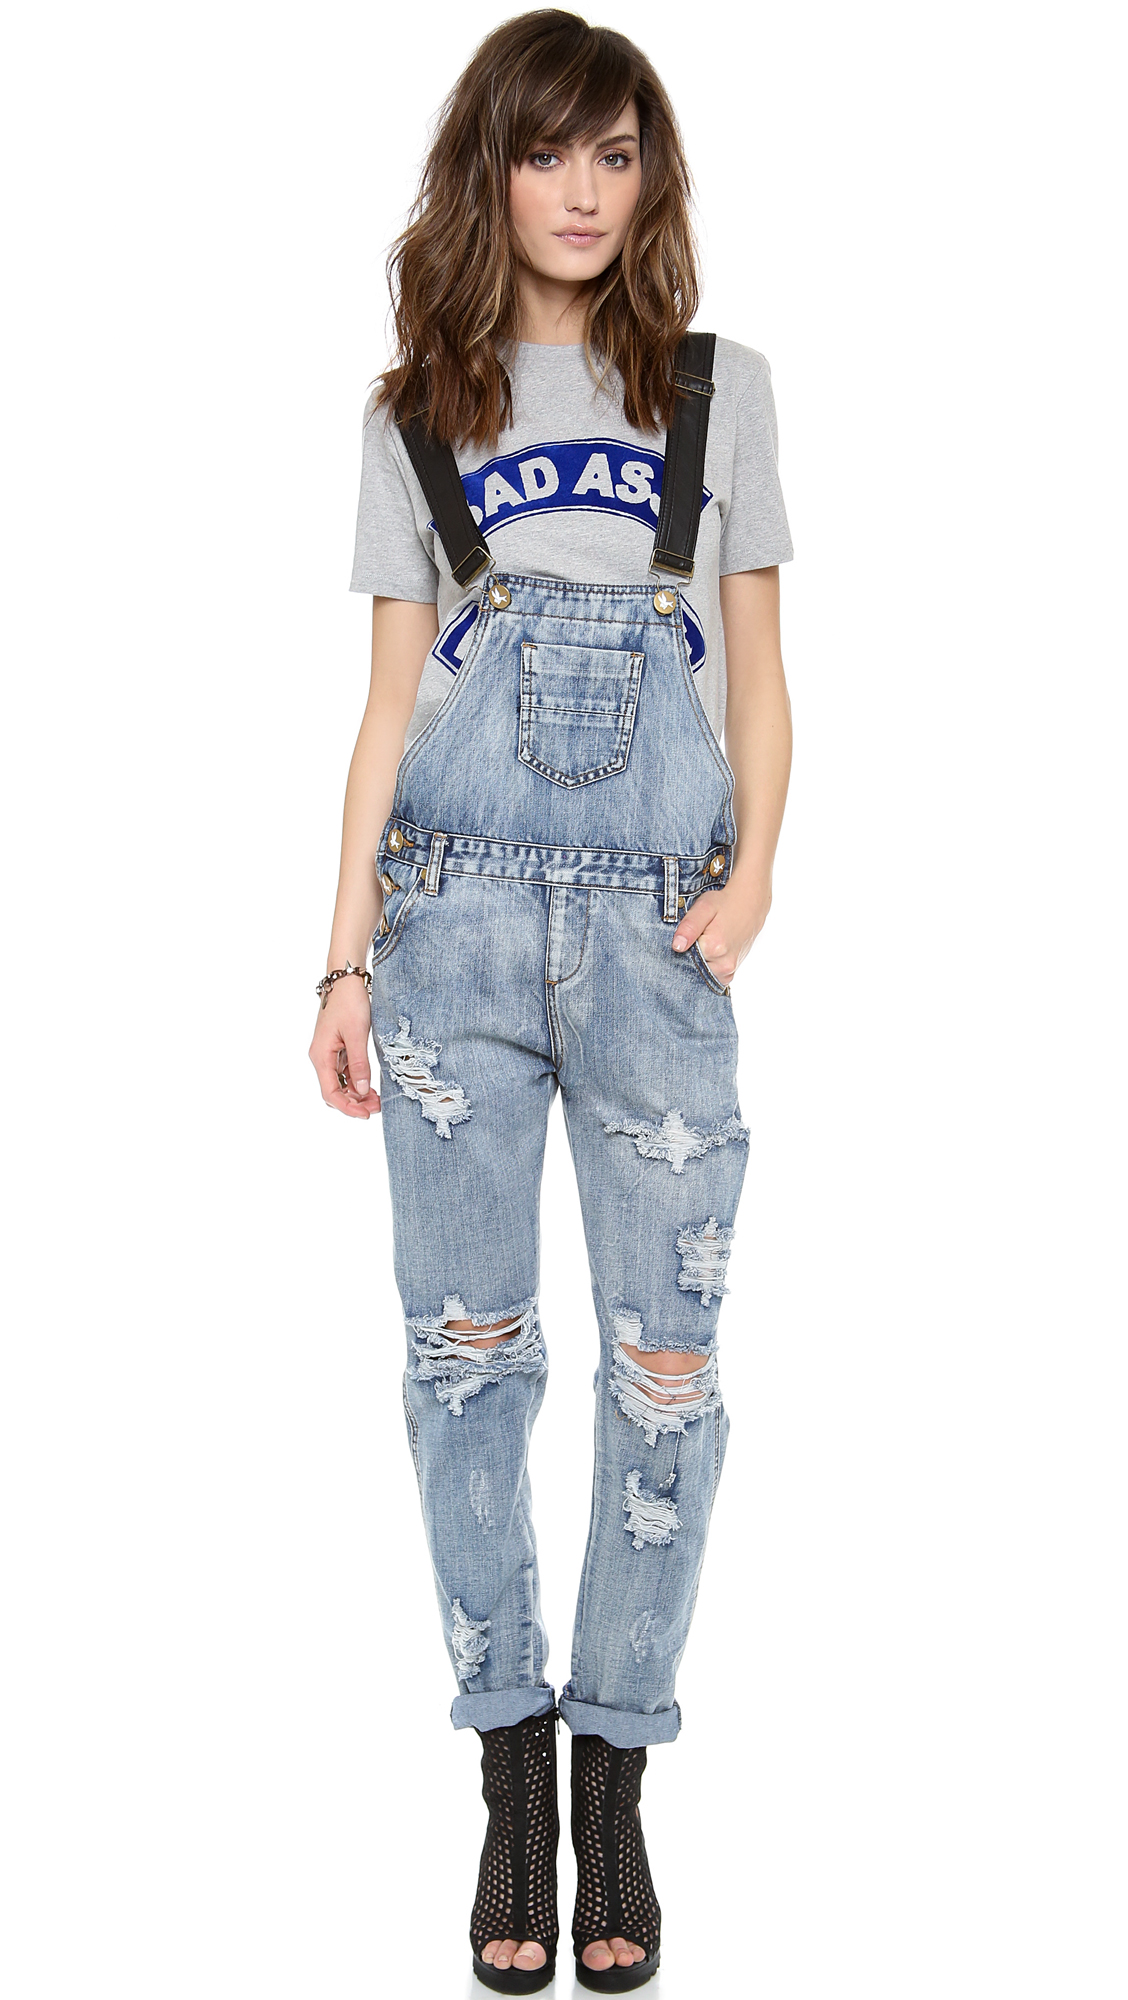 4f4720c2f0b8 Lyst - One Teaspoon Cobain Awesome Overalls in Blue